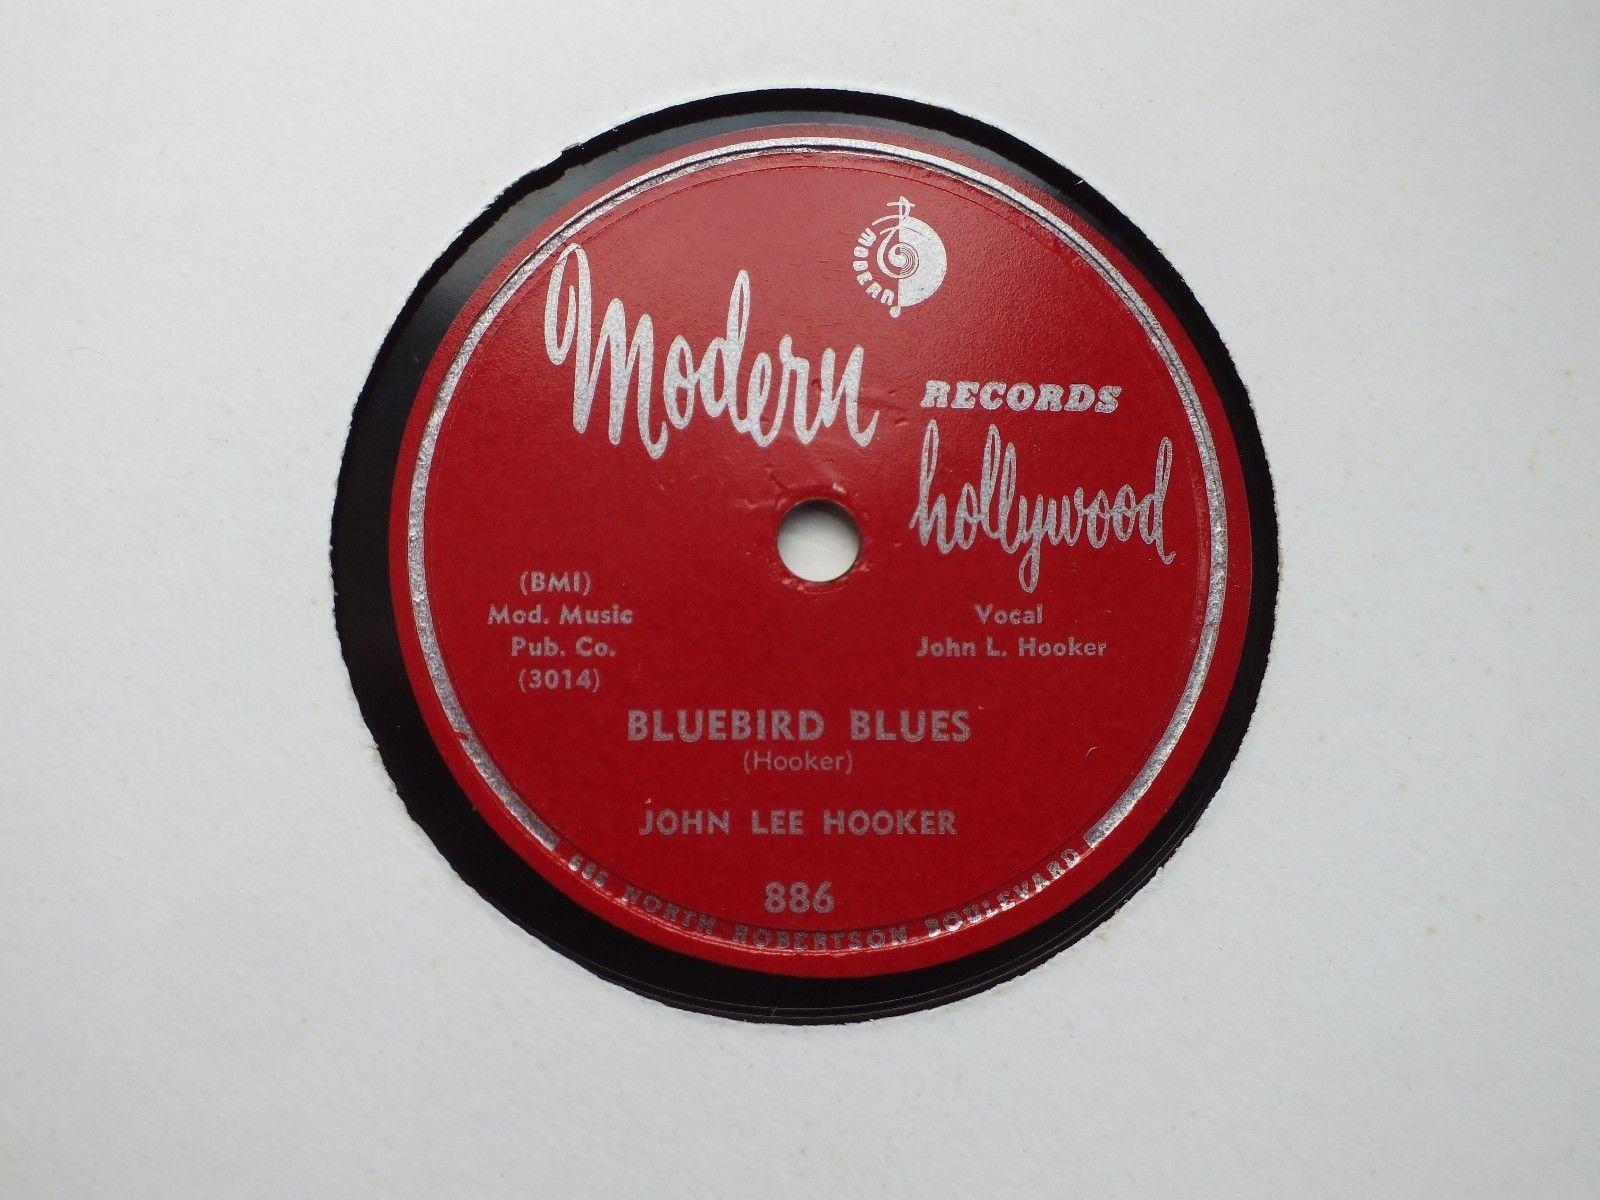 JOHN LEE HOOKER - Bluebird blues/Key to the highway - MODERN 886 - BLUES 78